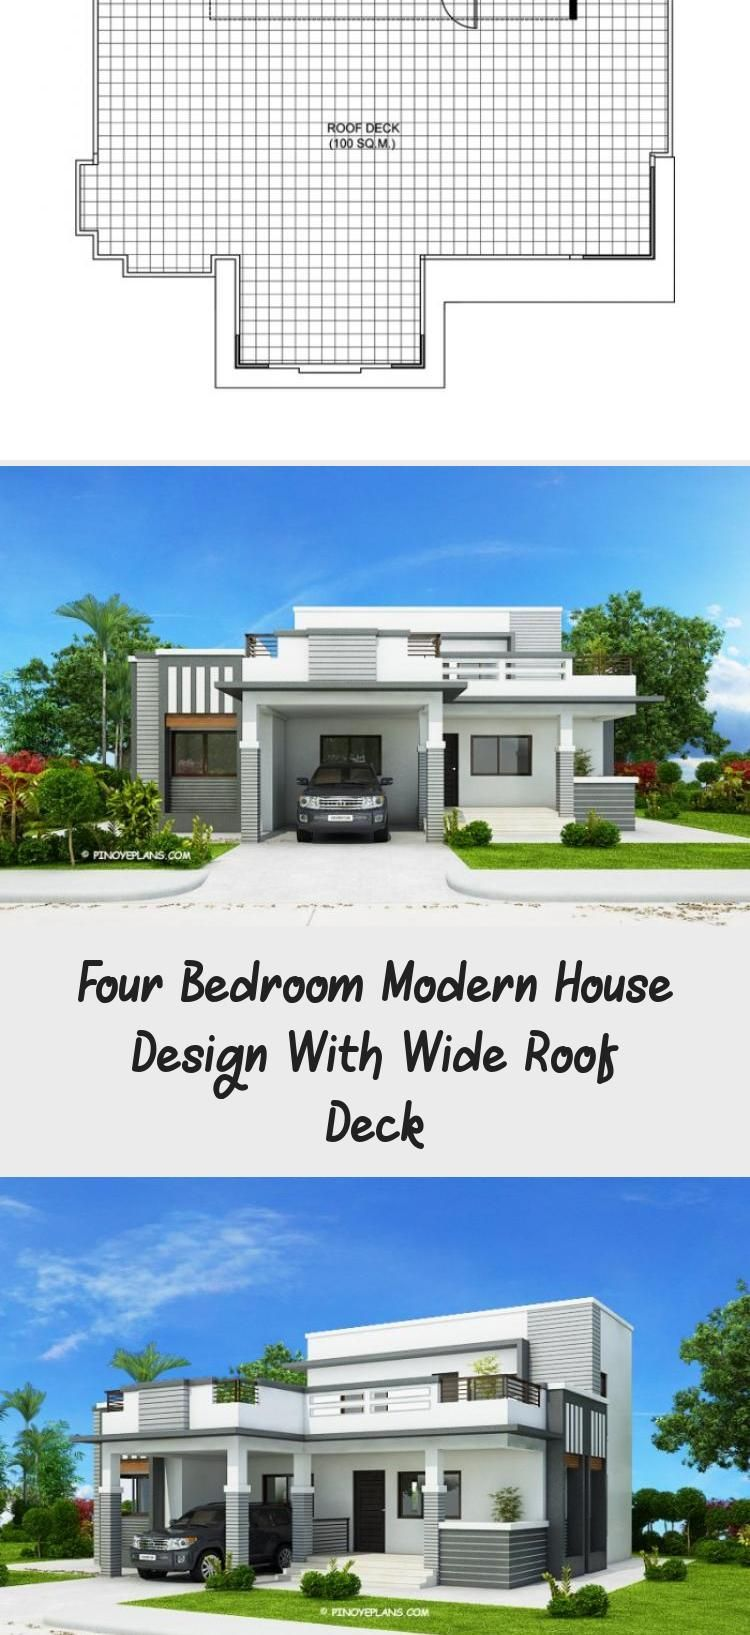 This four bedroom modern house design with roof deck has a total floor area of 1  This four bedroom modern house design with roof deck has a total floor area of 177 squar...